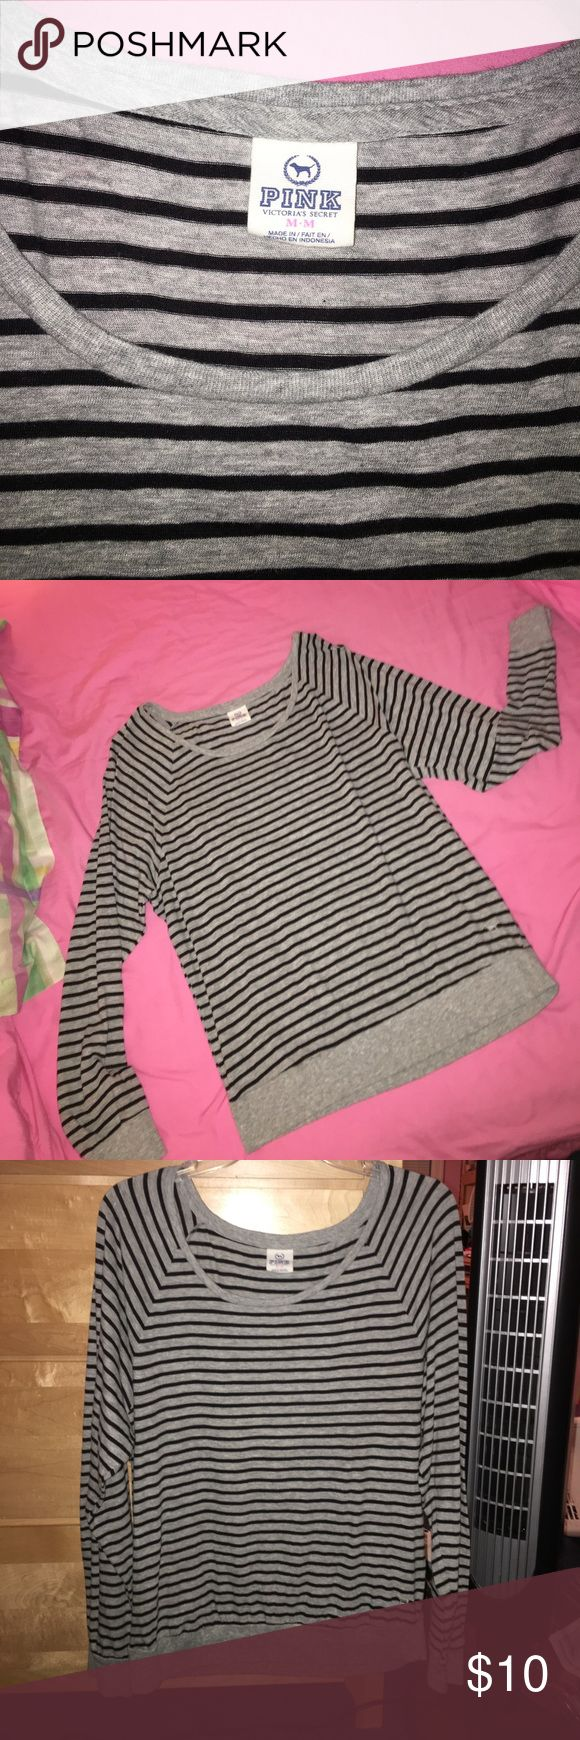 Victoria Secret PINK Striped Long Sleeve shirt Victoria Secret PINK medium gray and black long sleeved shirt. It's loosely fitting with a wider neck and an elastic band at the bottom! Worn less than 5 times. Very good condition - like new! PINK Victoria's Secret Tops Tees - Long Sleeve